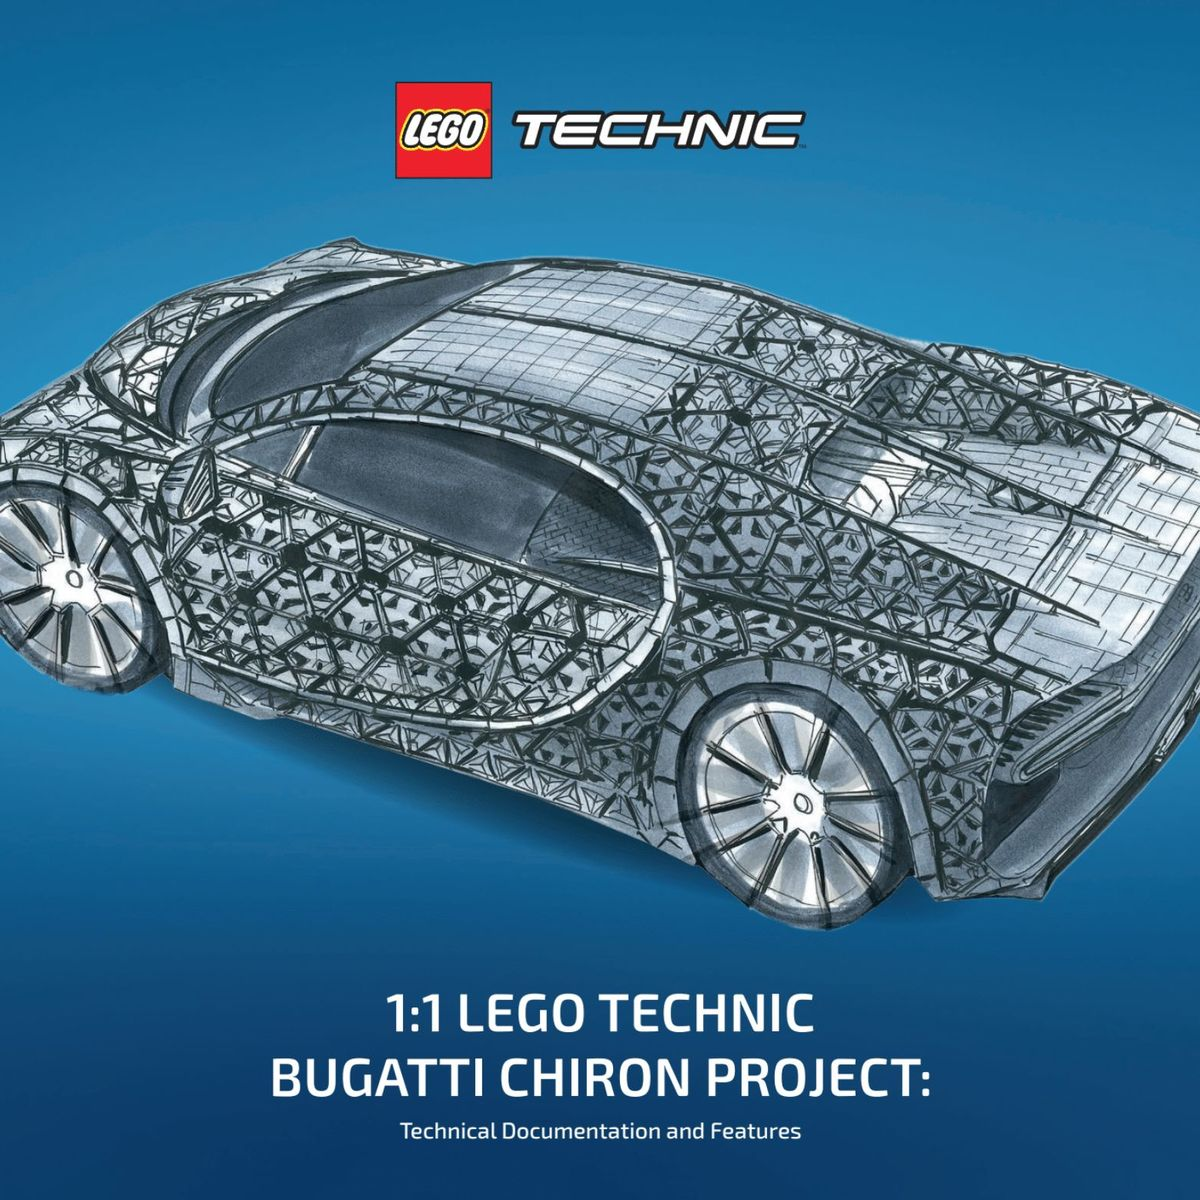 This life-size, driveable Bugatti is made of LEGOs